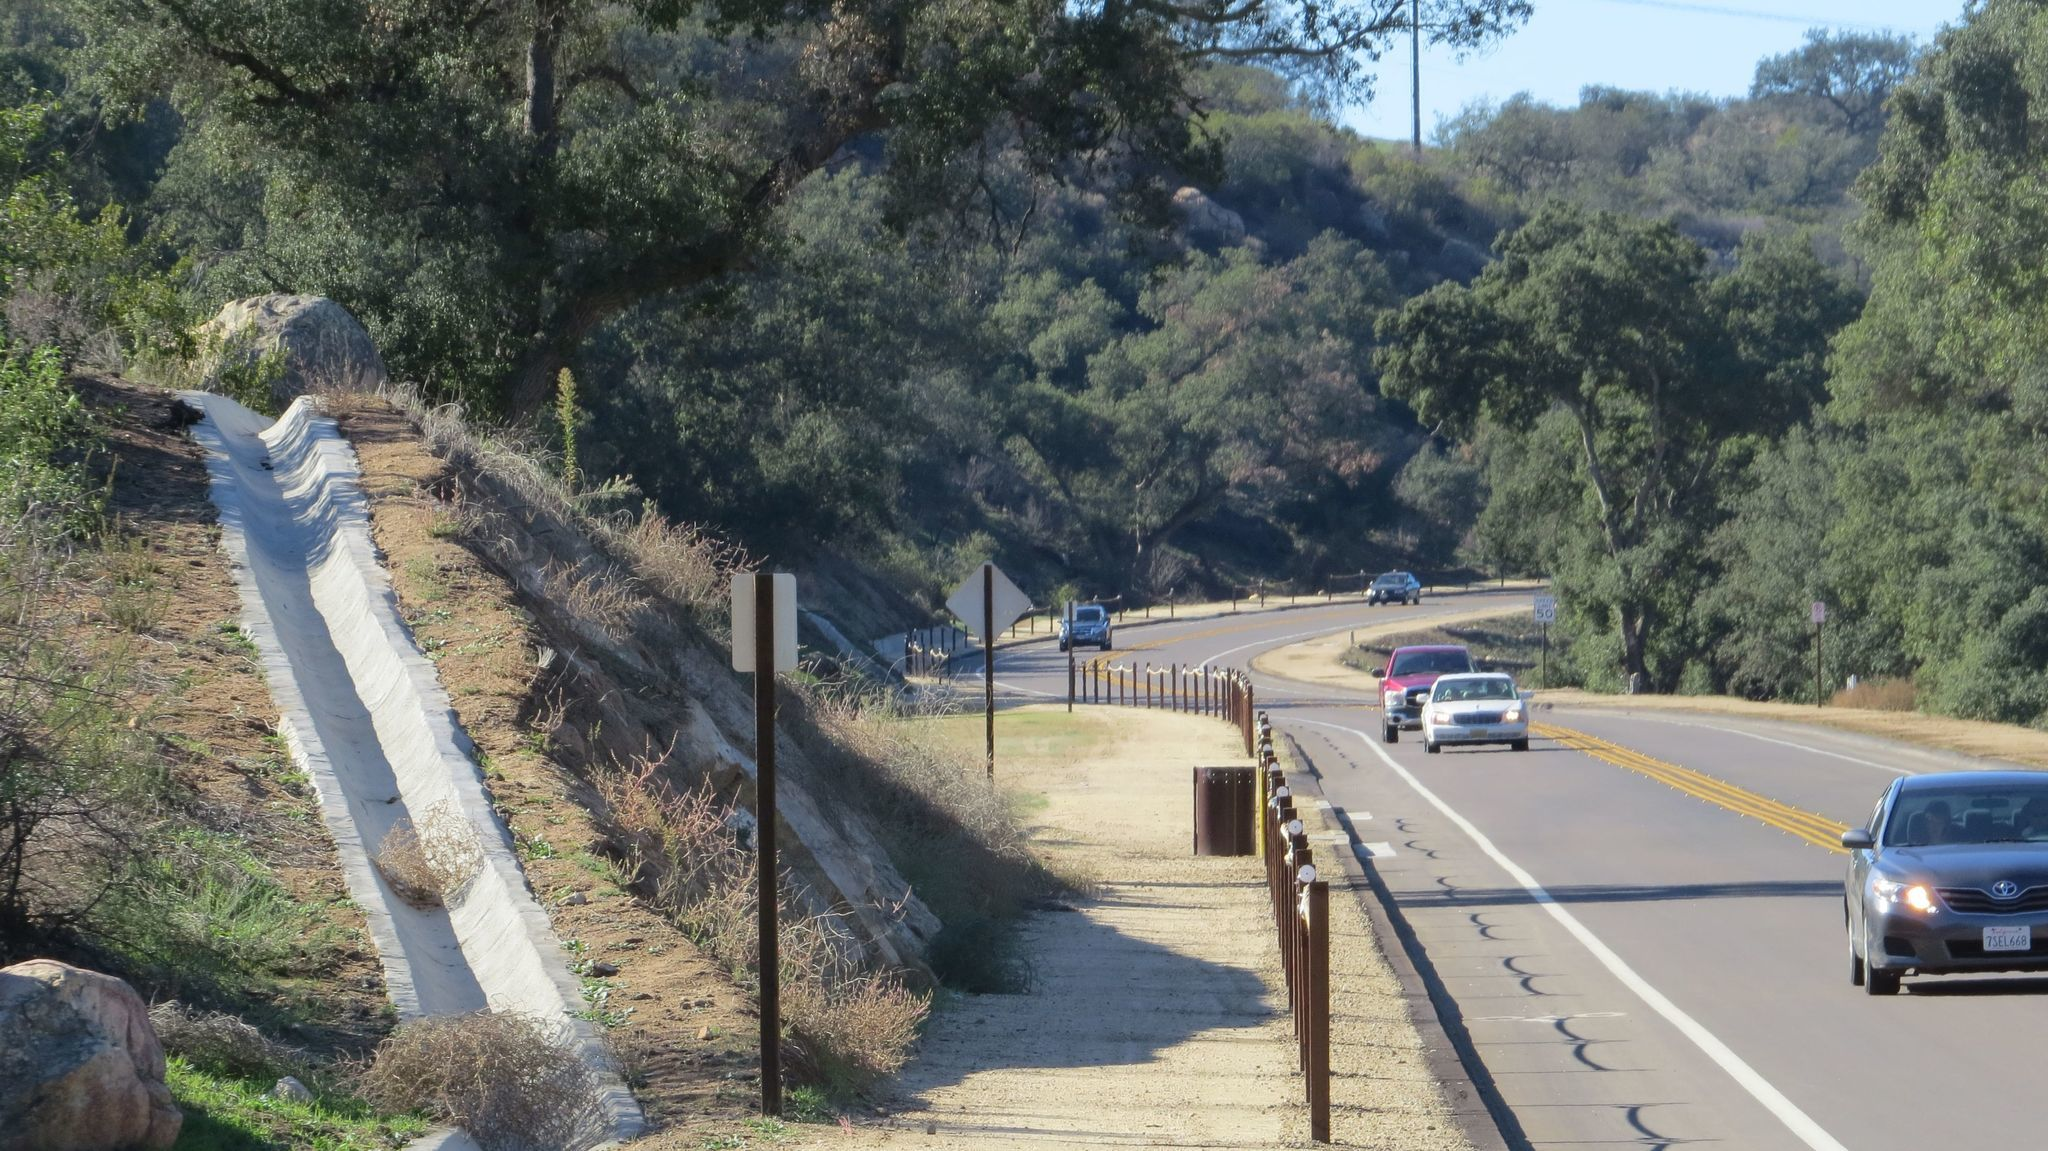 A 10-foot-wide multi-use trail runs along a 2.2-mile section of San Vicente Road in Ramona that has recently been widened and straightened by the county at a cost of $22 million.